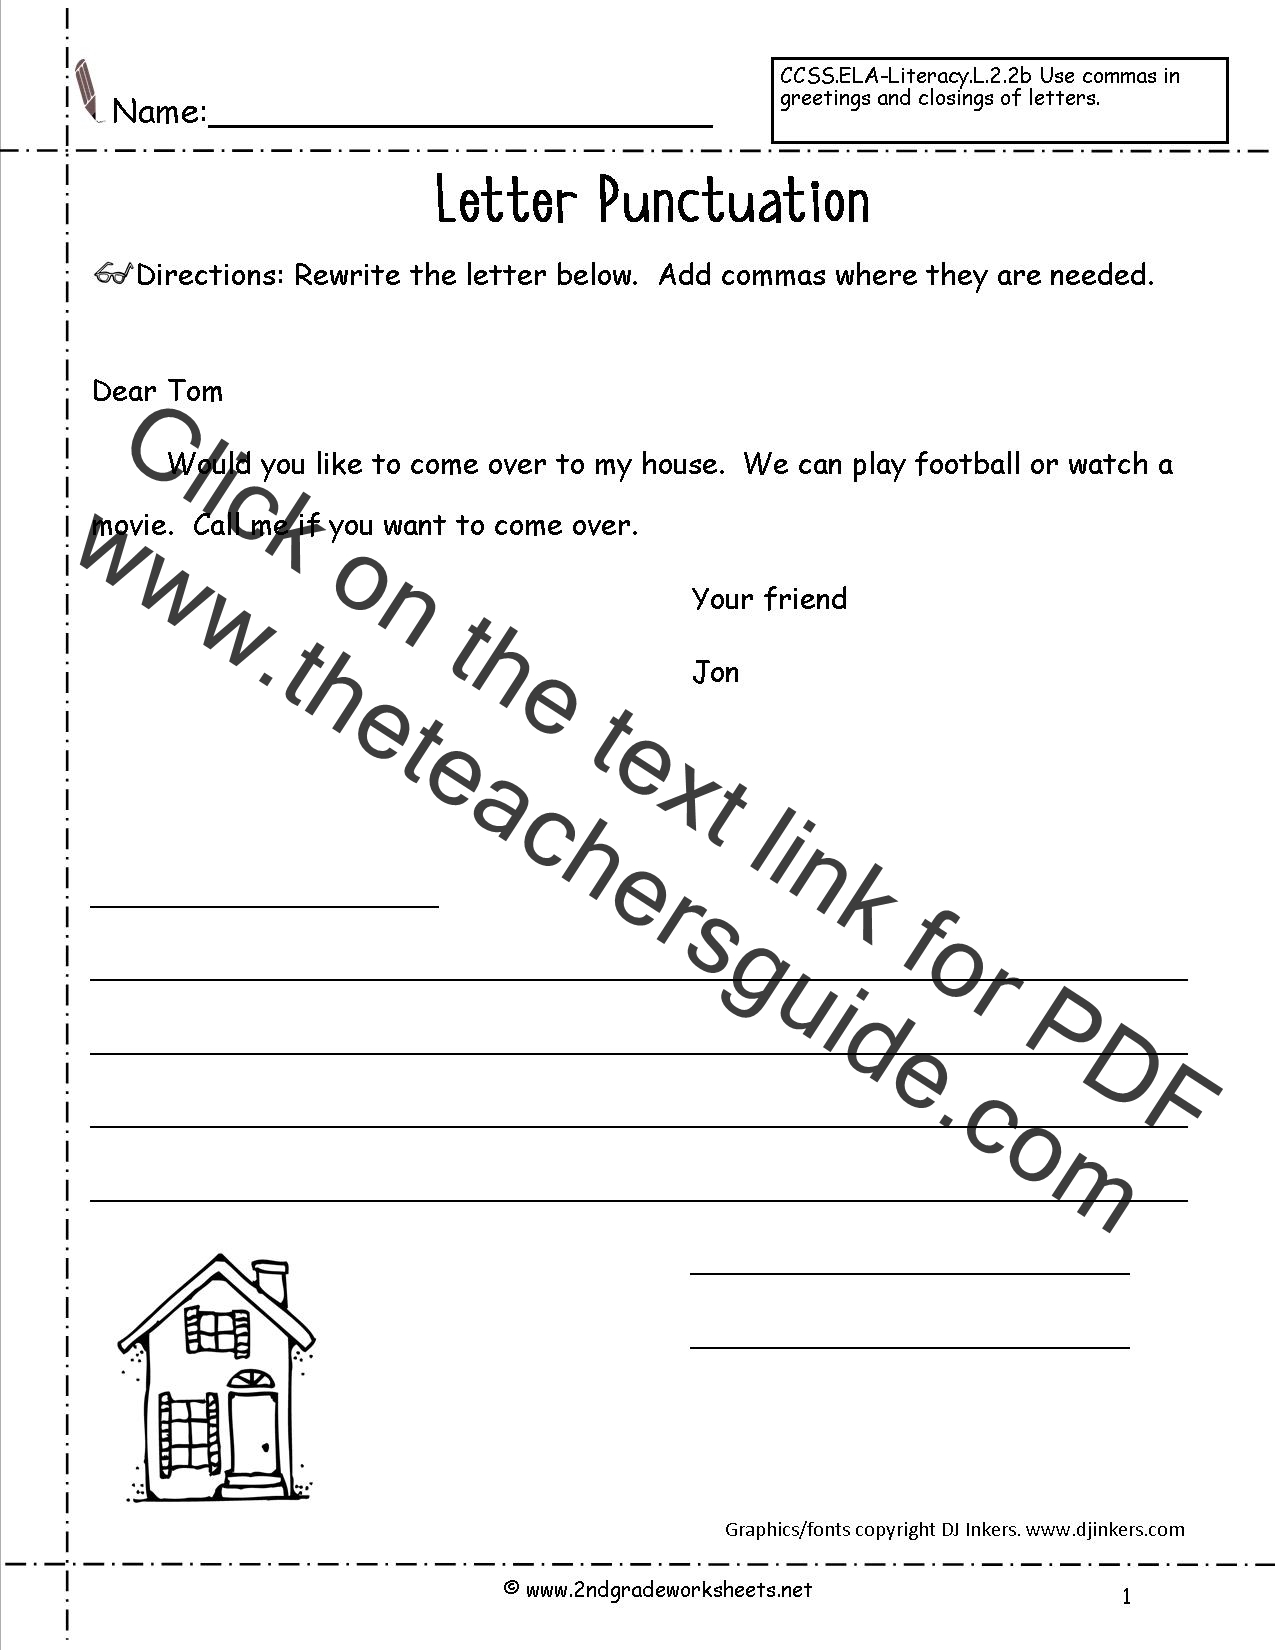 Perfect Friendly Letter Punctuation Regarding Salutation Punctuation